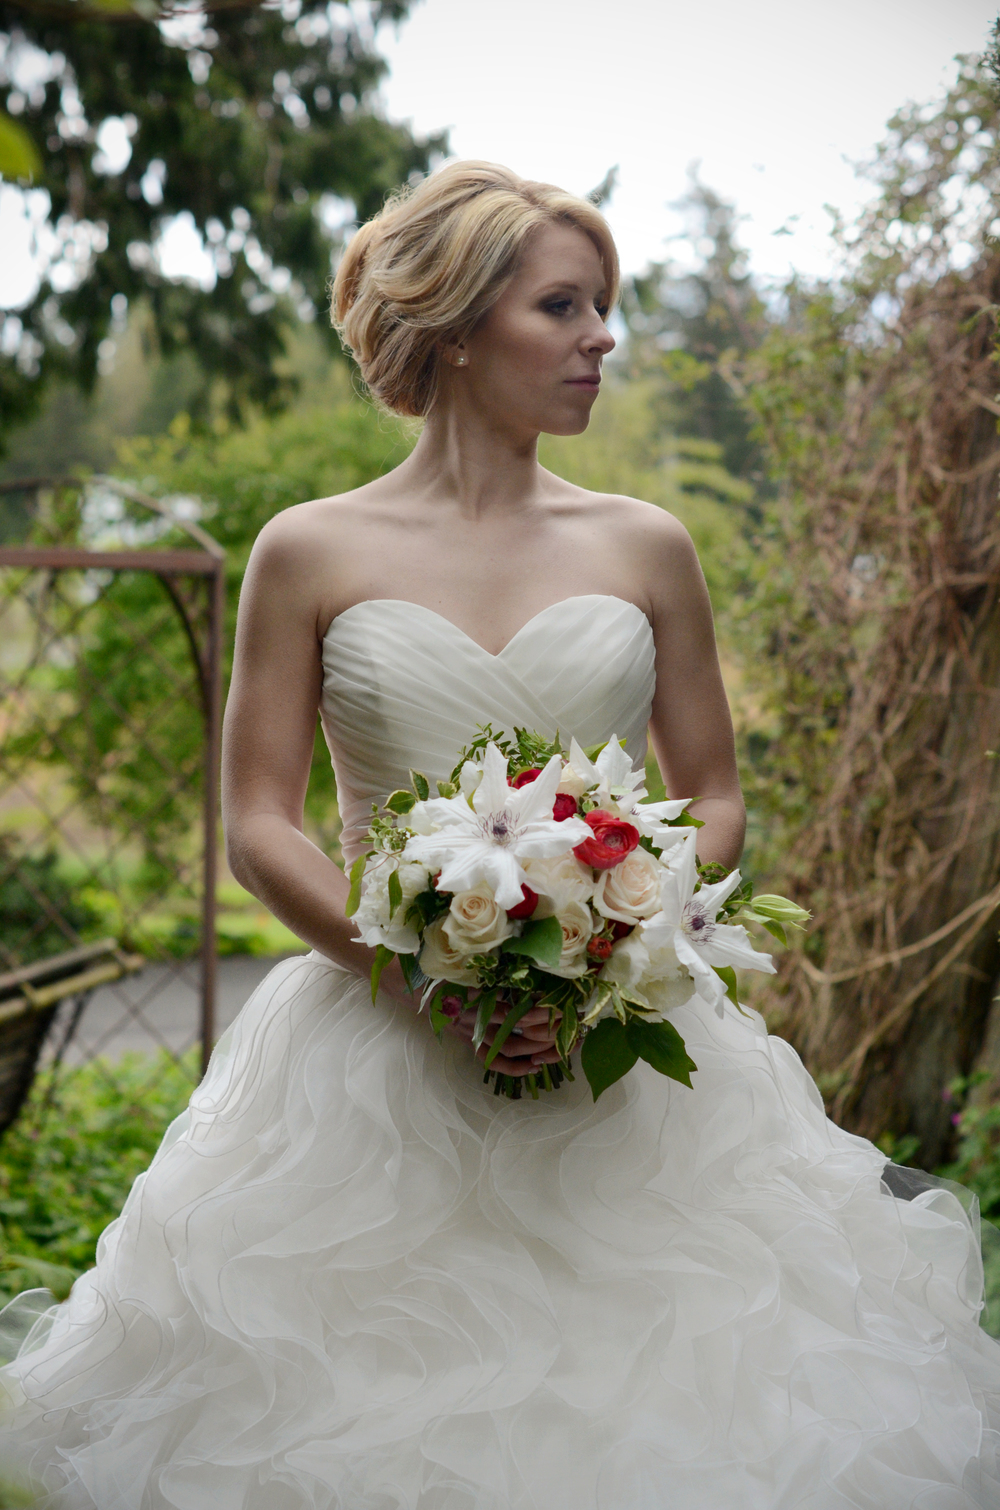 Rustic Garden style bridal bouquet by Floral Design by Lili in Abbotsford, B.C. Image by Acacia Ann Photography